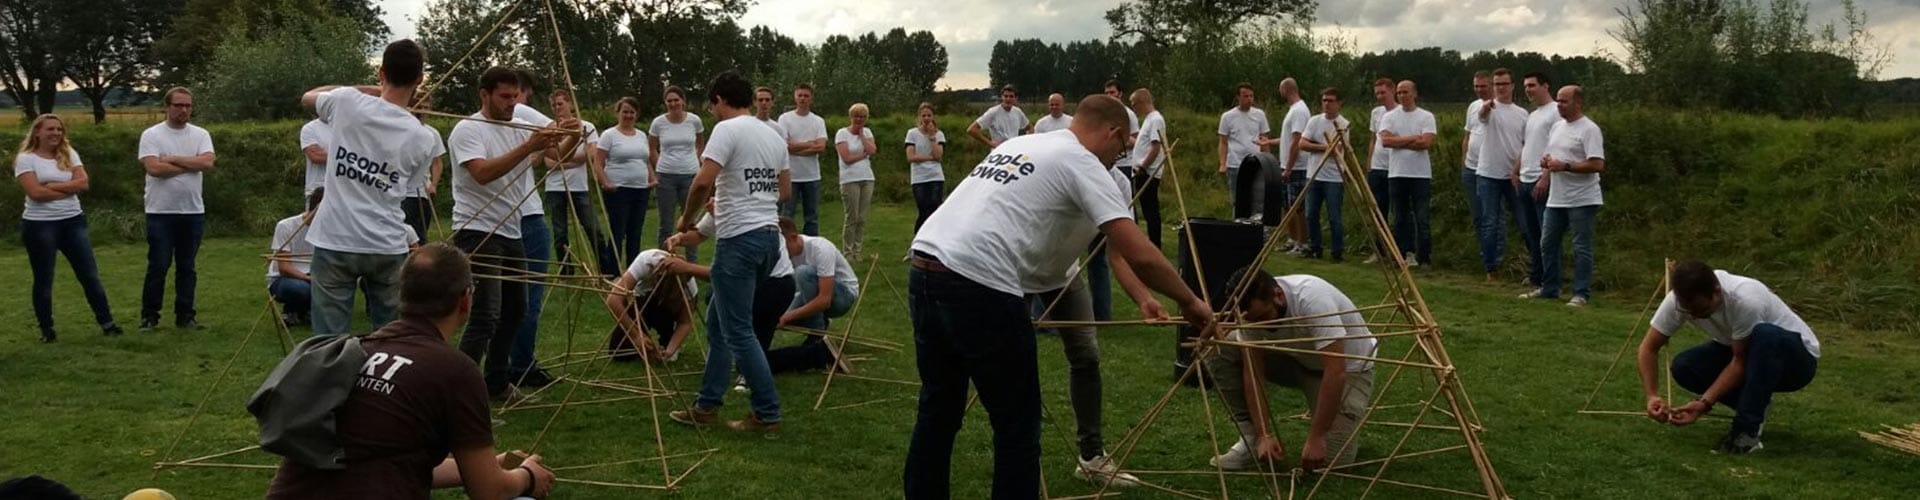 Teambuilding evenement